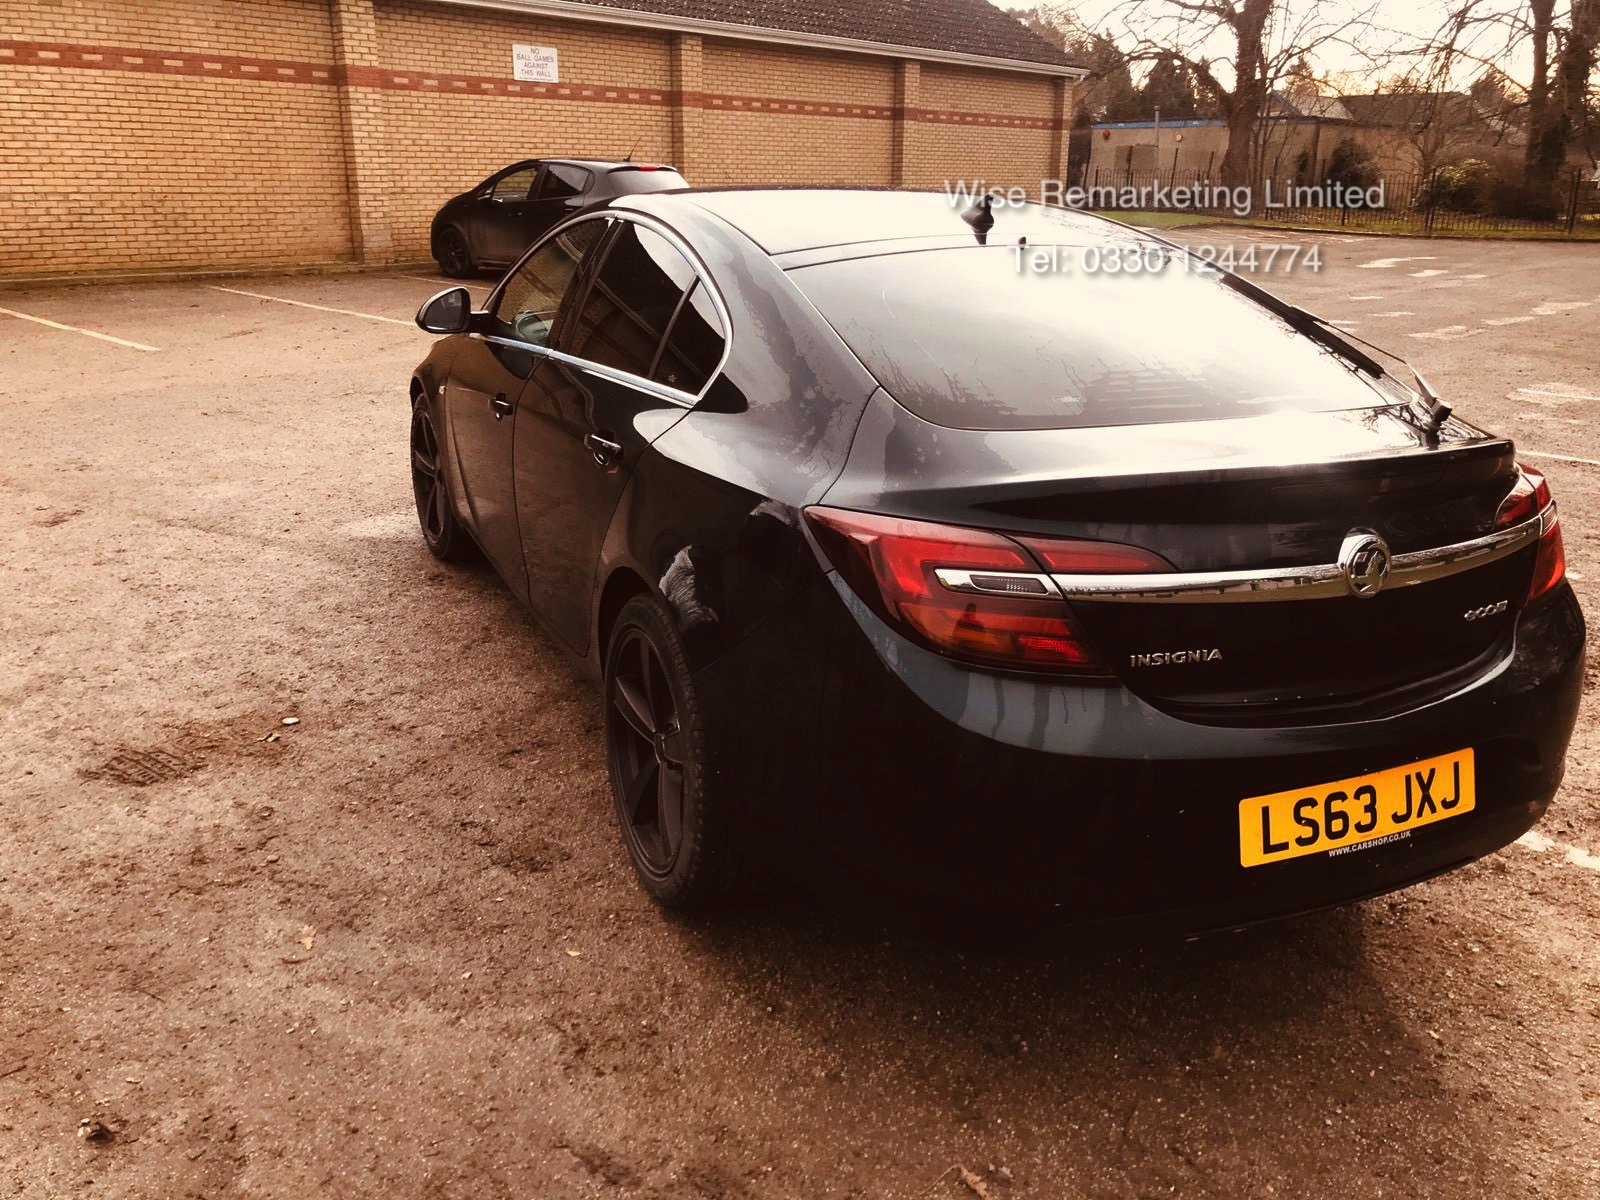 (RESERVE MET) Vauxhall Insignia 2.0 CDTI Techline 6 Speed - 2014 Model - Part Leather - - Image 2 of 20